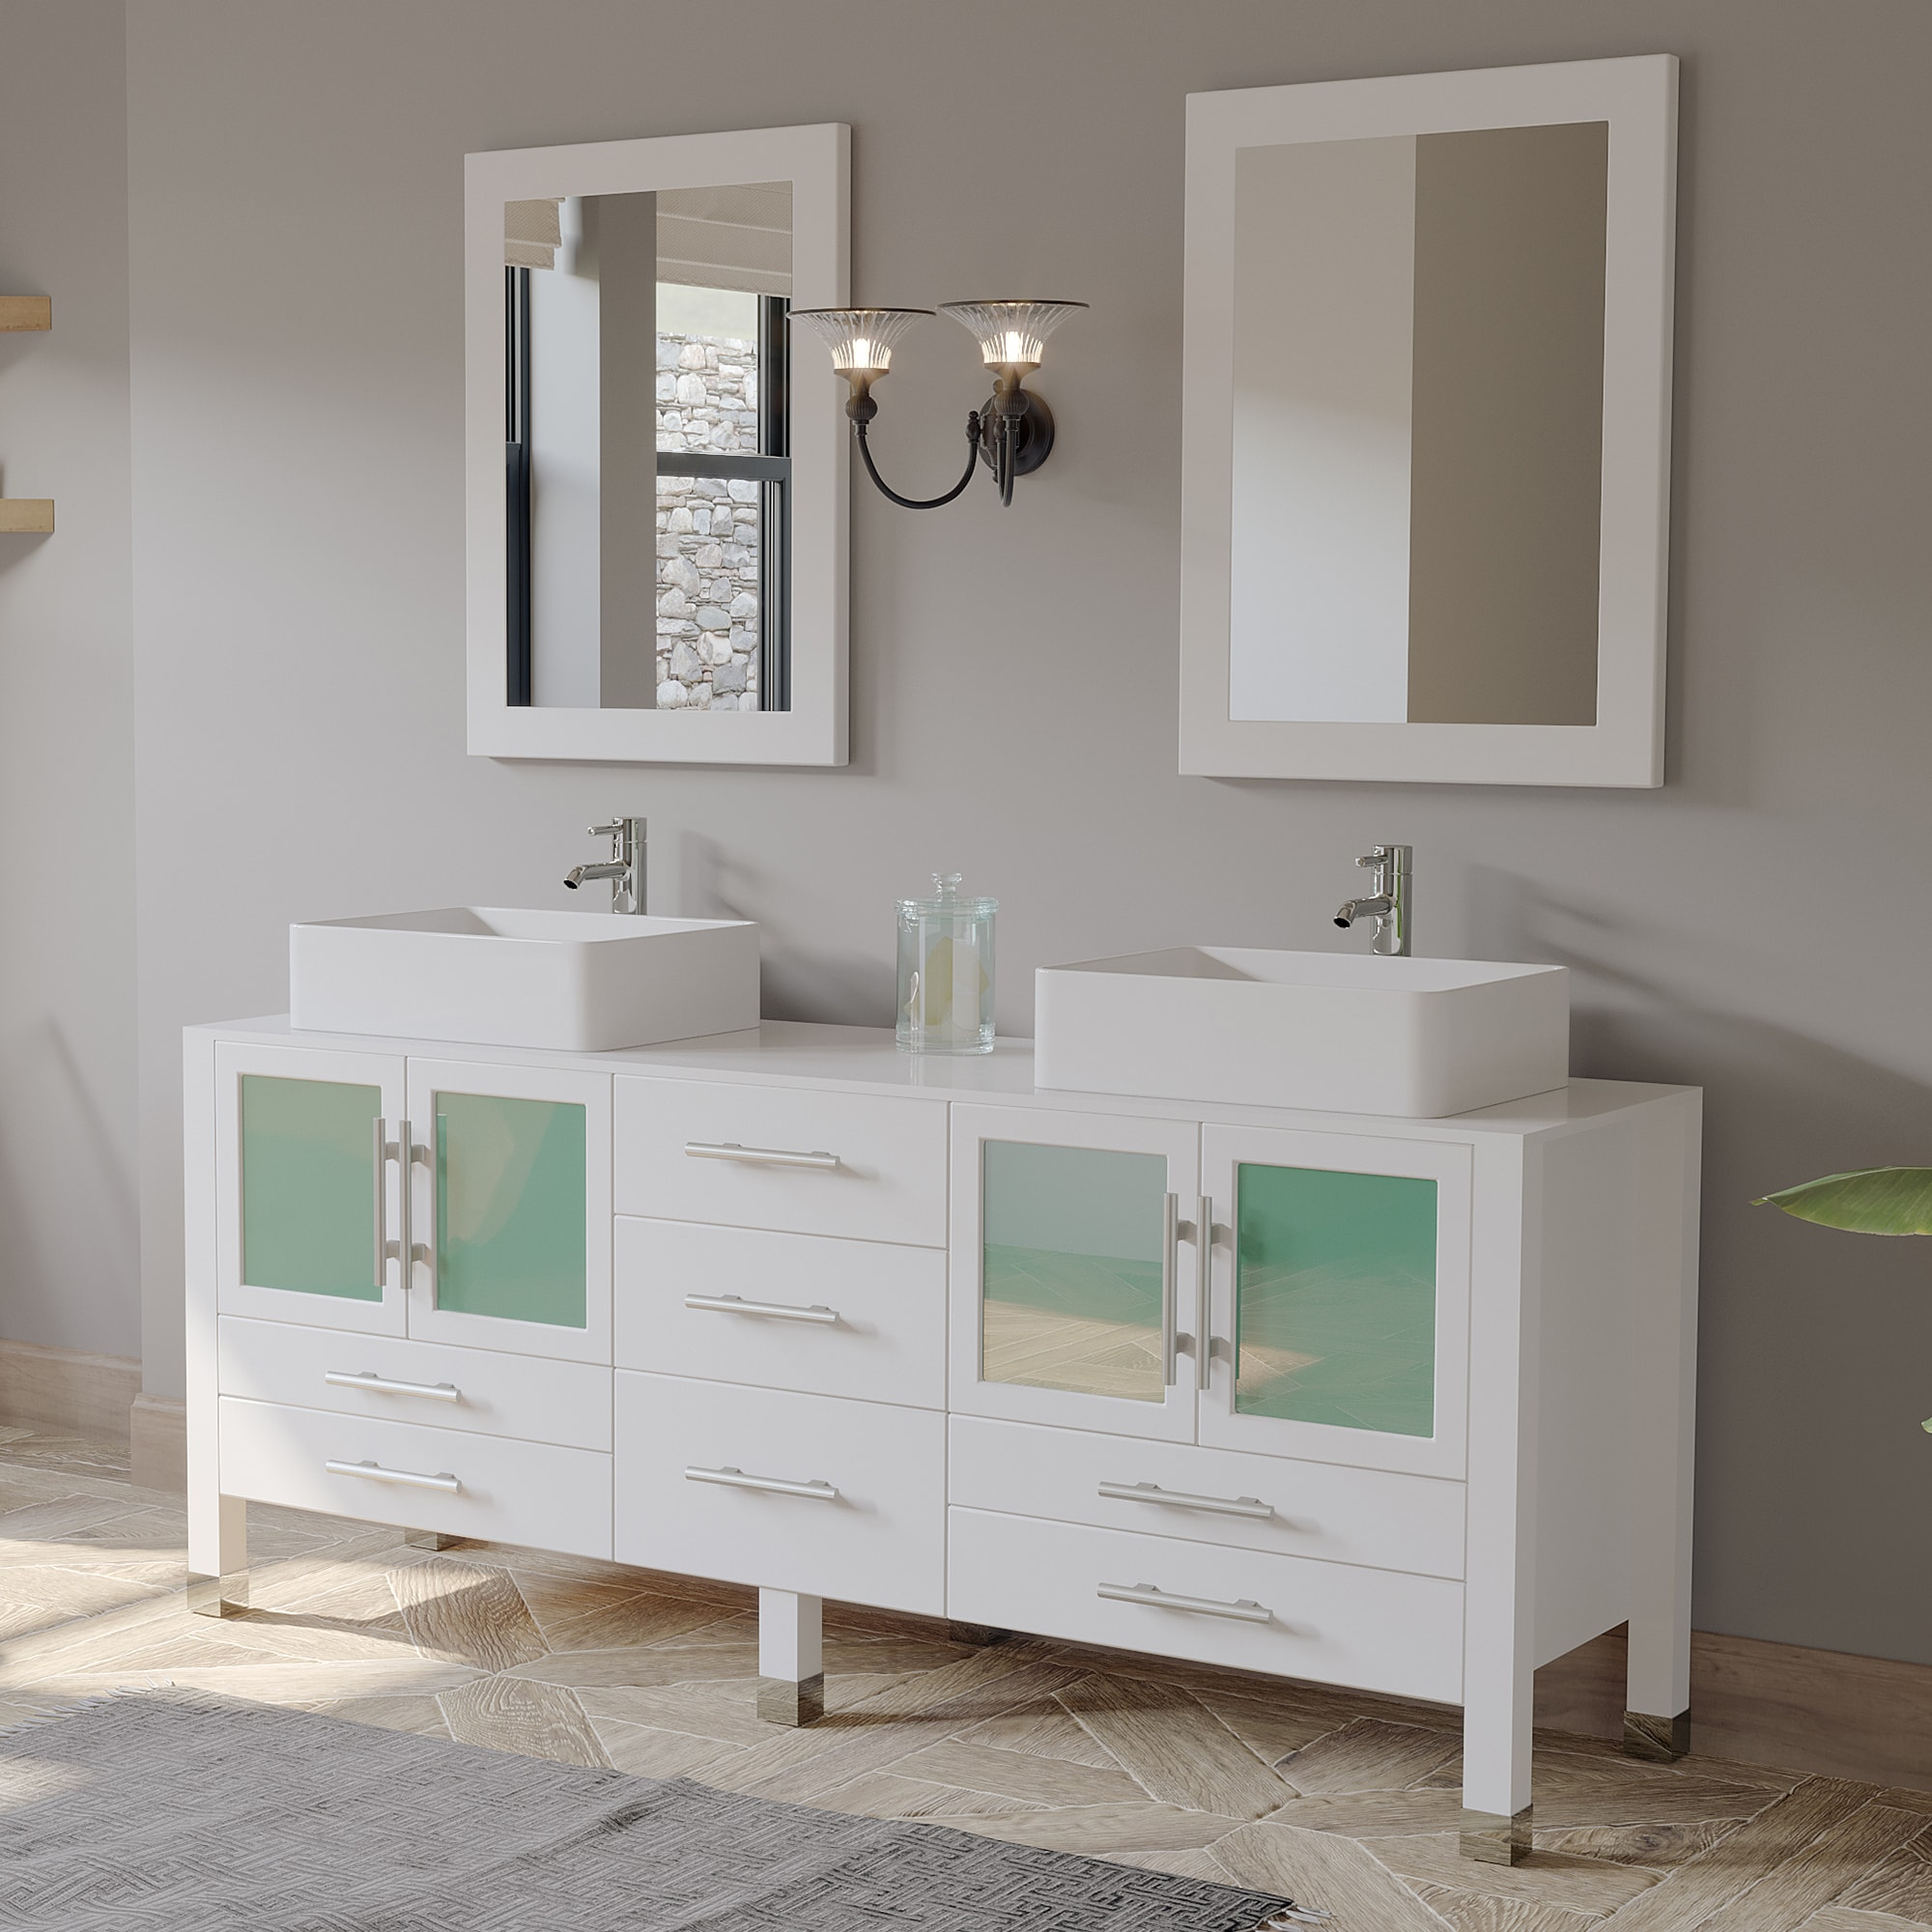 """71"""" Solid Wood Vanity with a Porcelain Counter Top and Two Matching Vessel Sinks, Two Long-Stemmed Faucets options and Drains"""